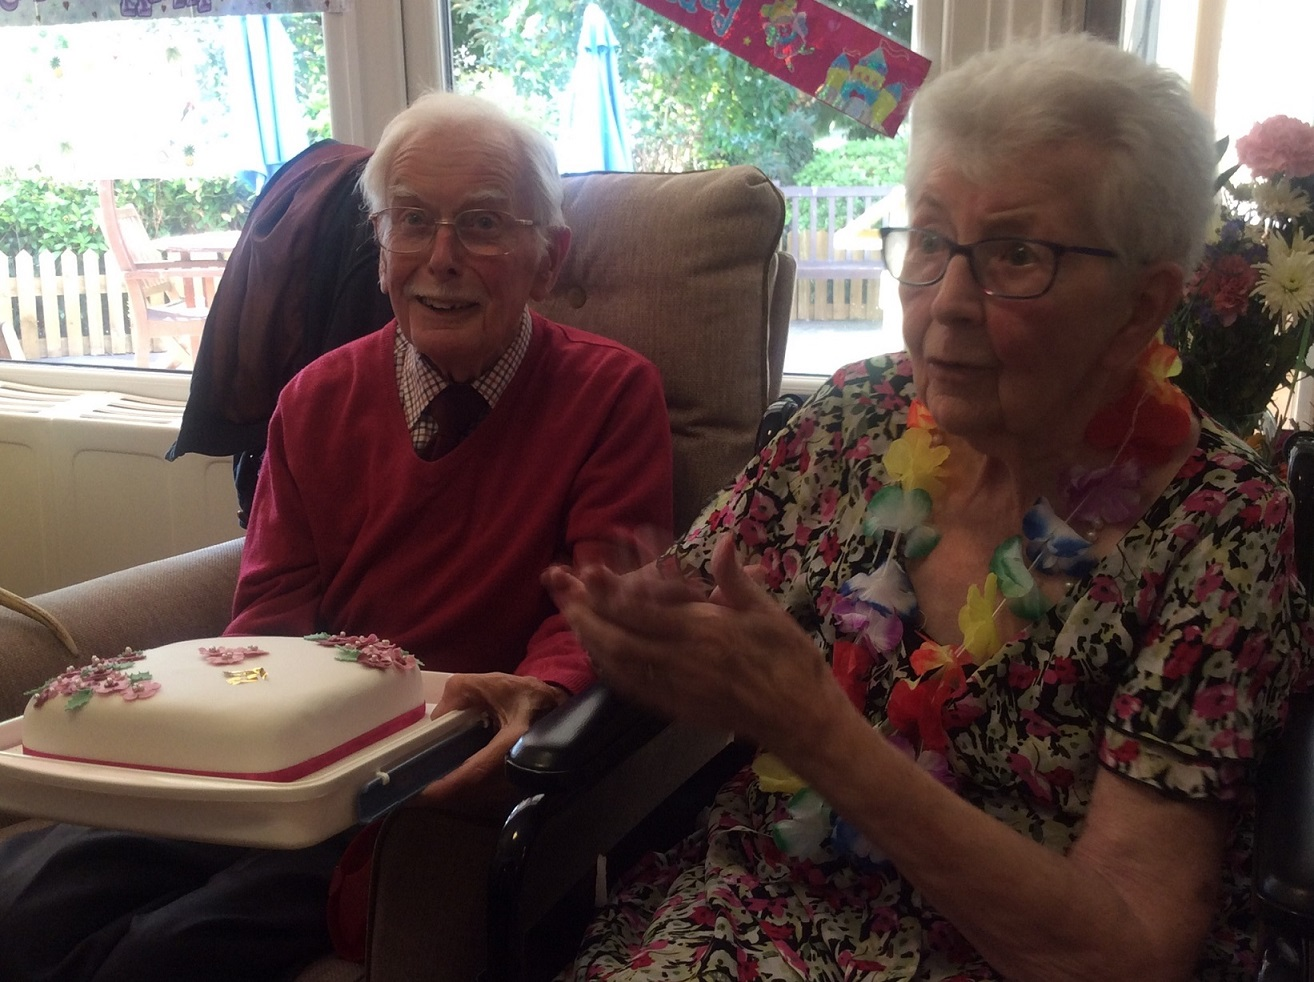 Tom and Margaret with their anniversary cake